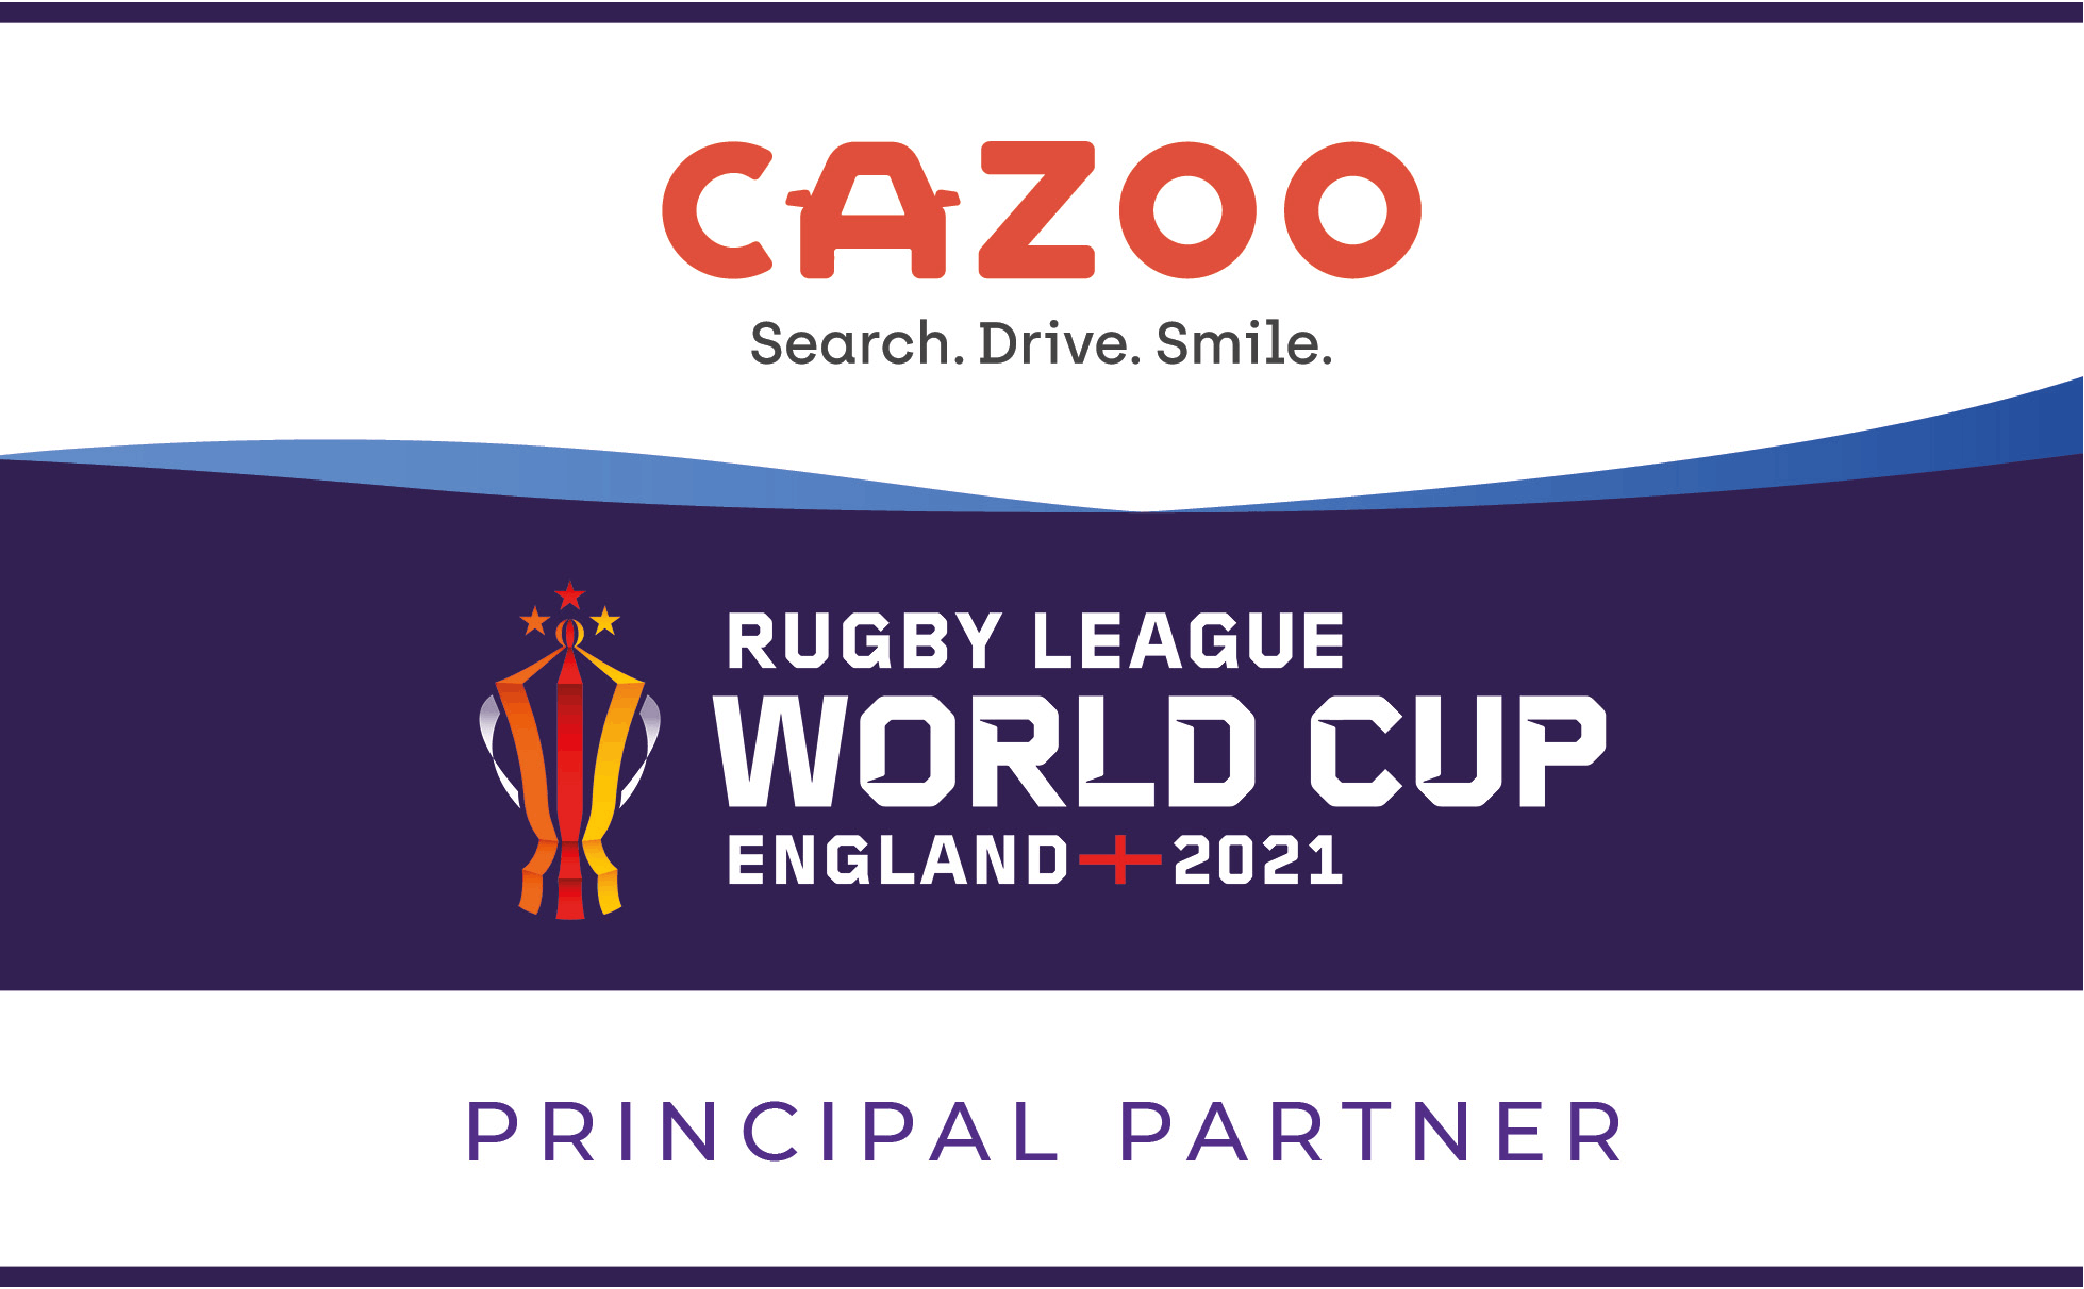 Cazoo Rugby League World Cup Sponsorship